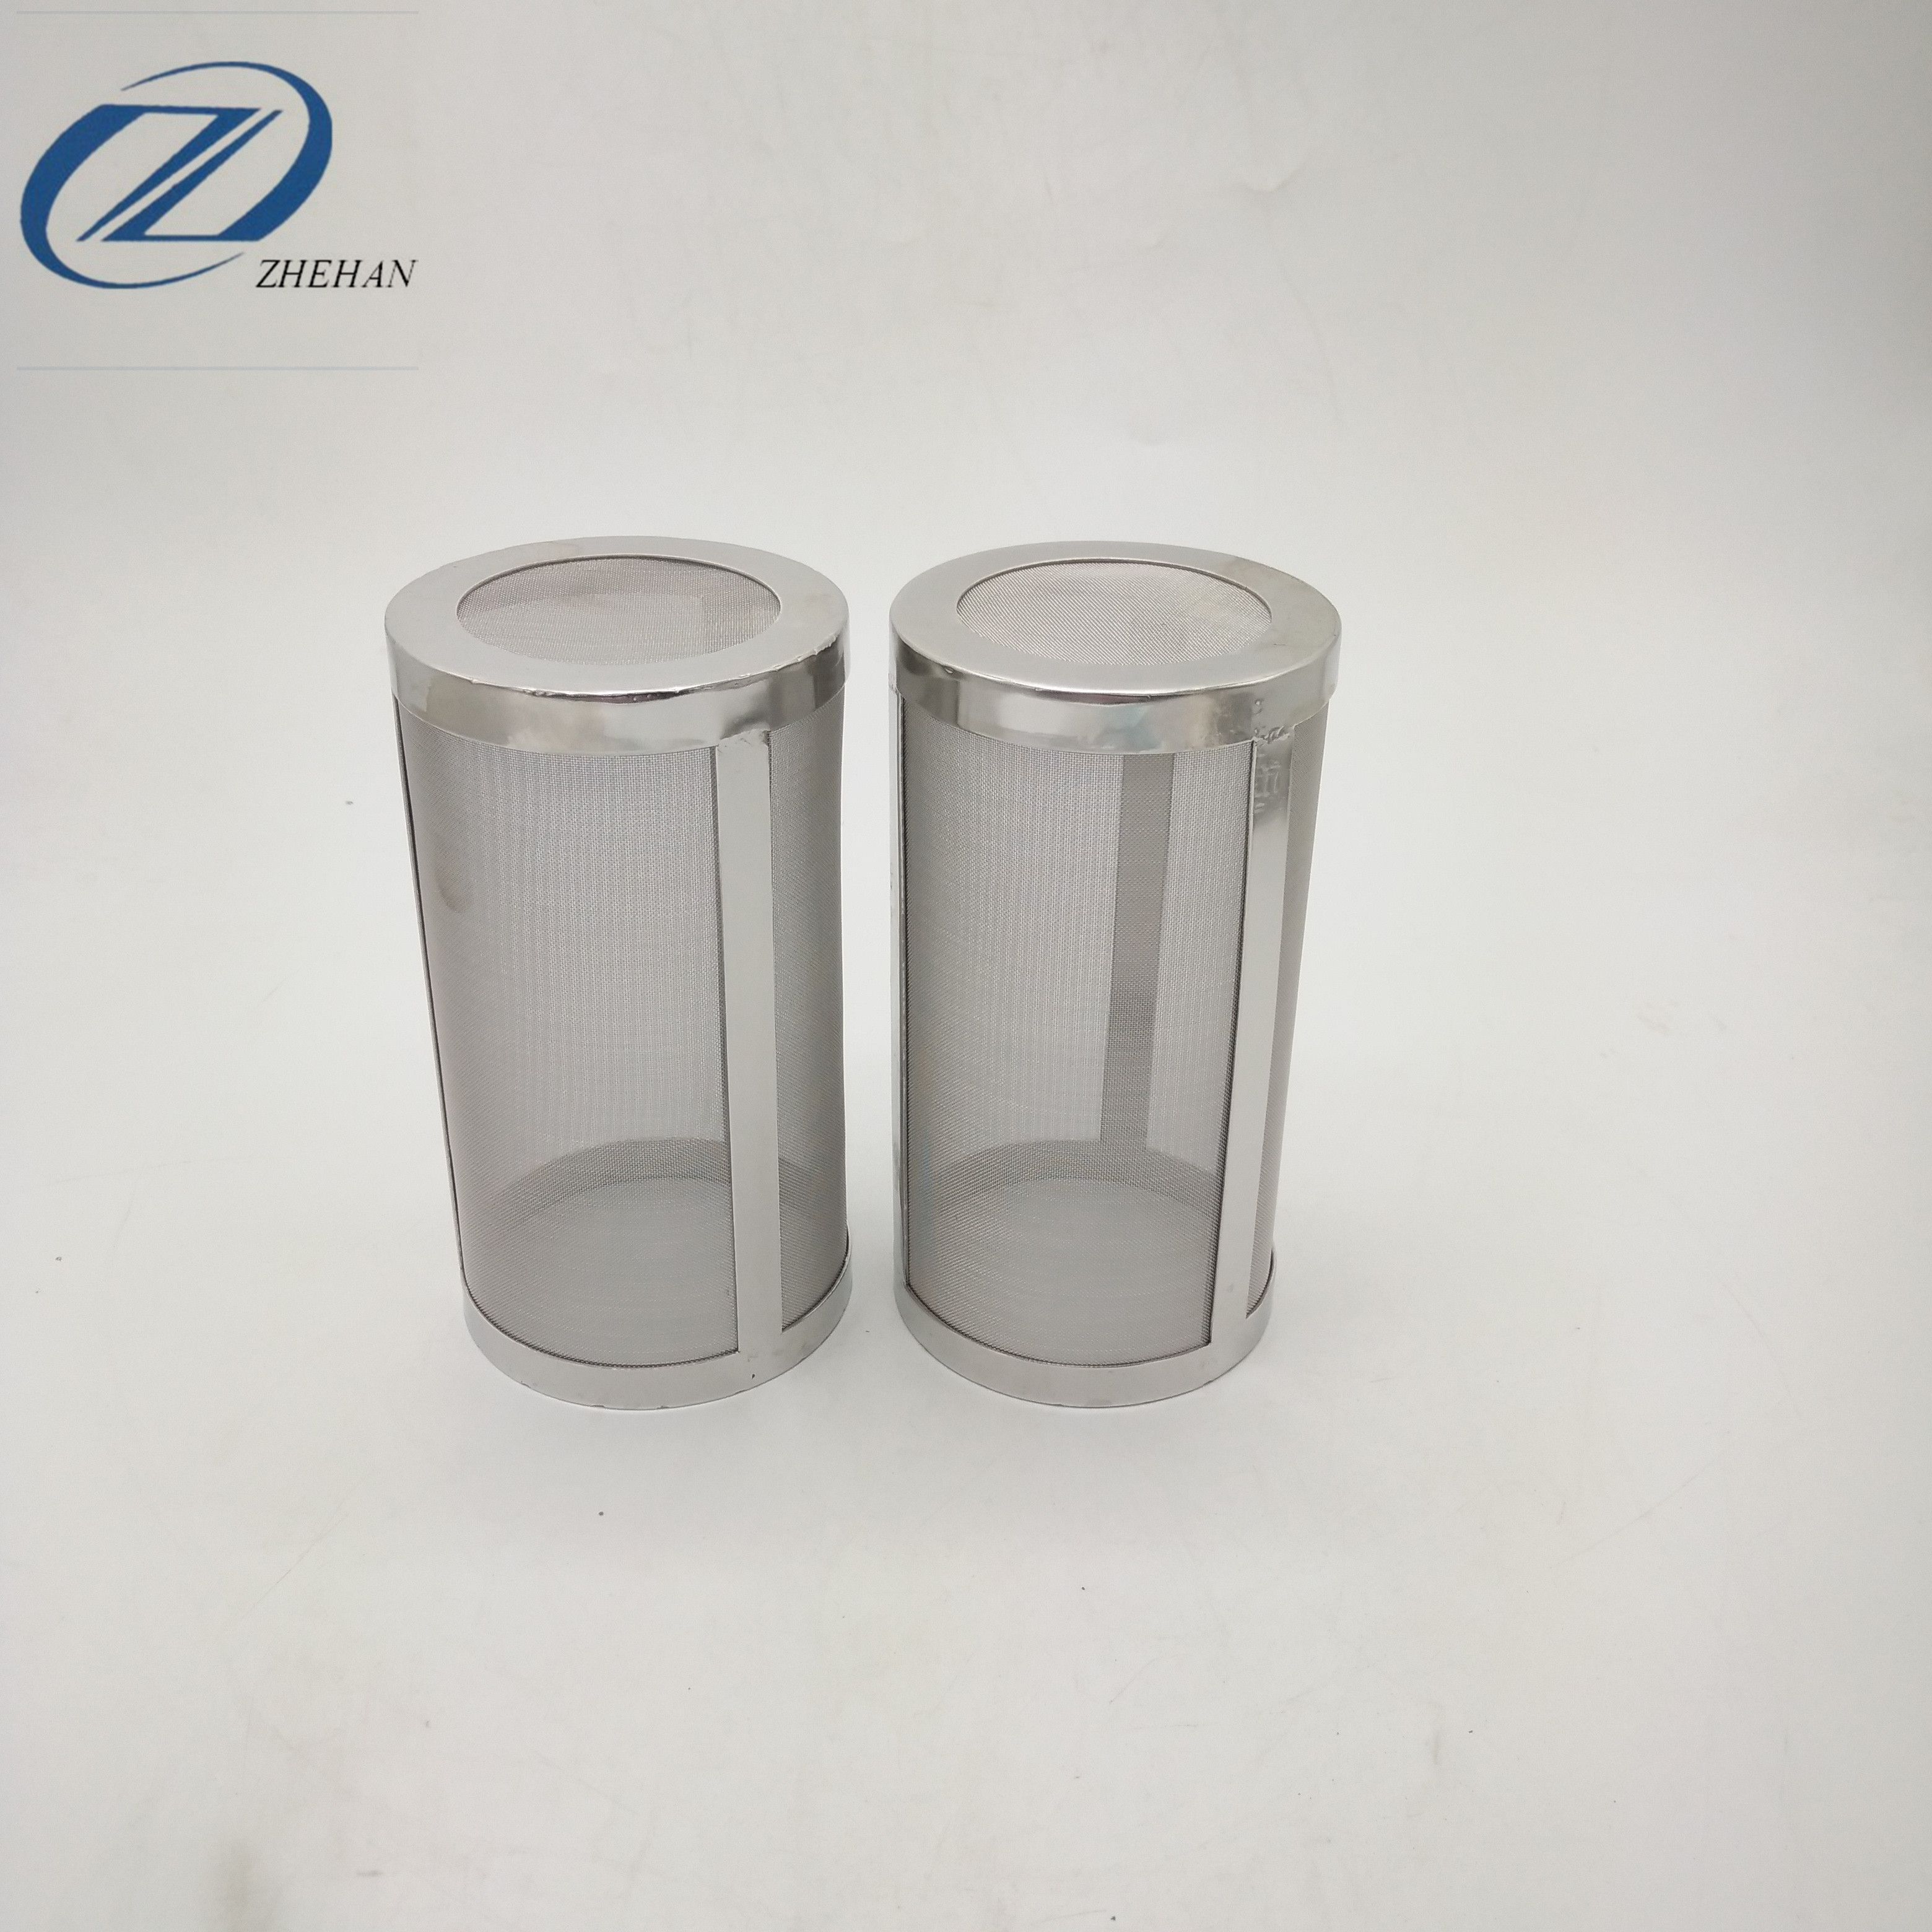 stainless steel filter basket Filters, Basket, Small